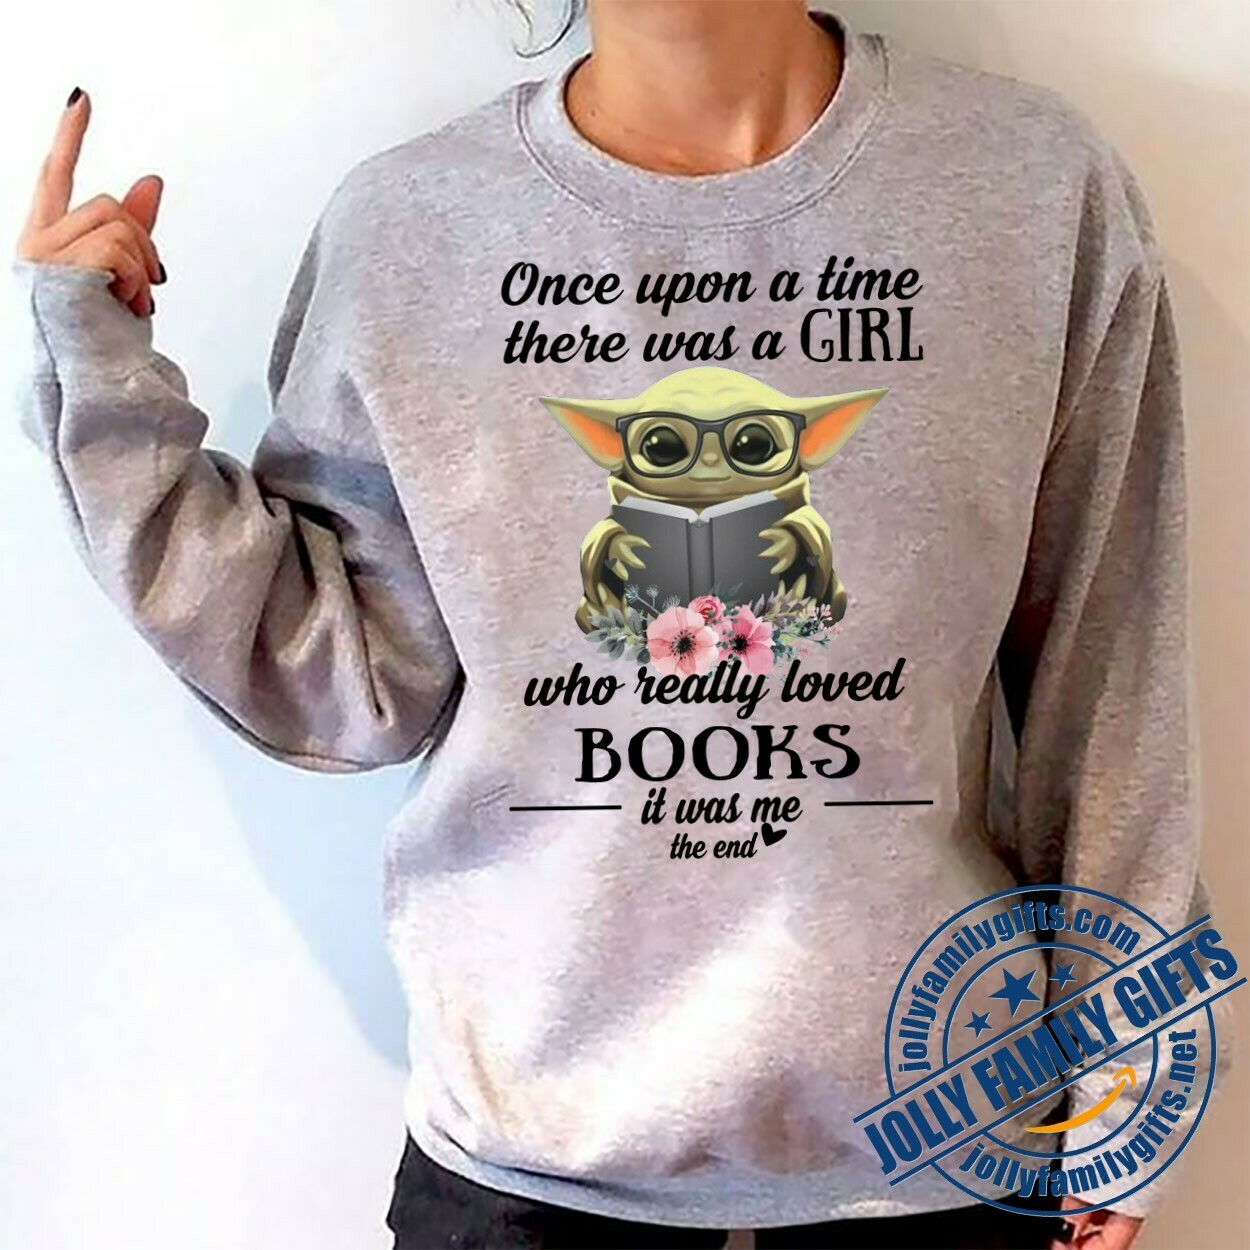 Baby Yoda The Mandalorian with death Star Wars Movie Yoda Once Upon A Time There Was A Girl Who Really Loved Books love  T-Shirt Hoodie Sweatshirt Sweater Tee Kids Youth Gifts Jolly Family Gifts